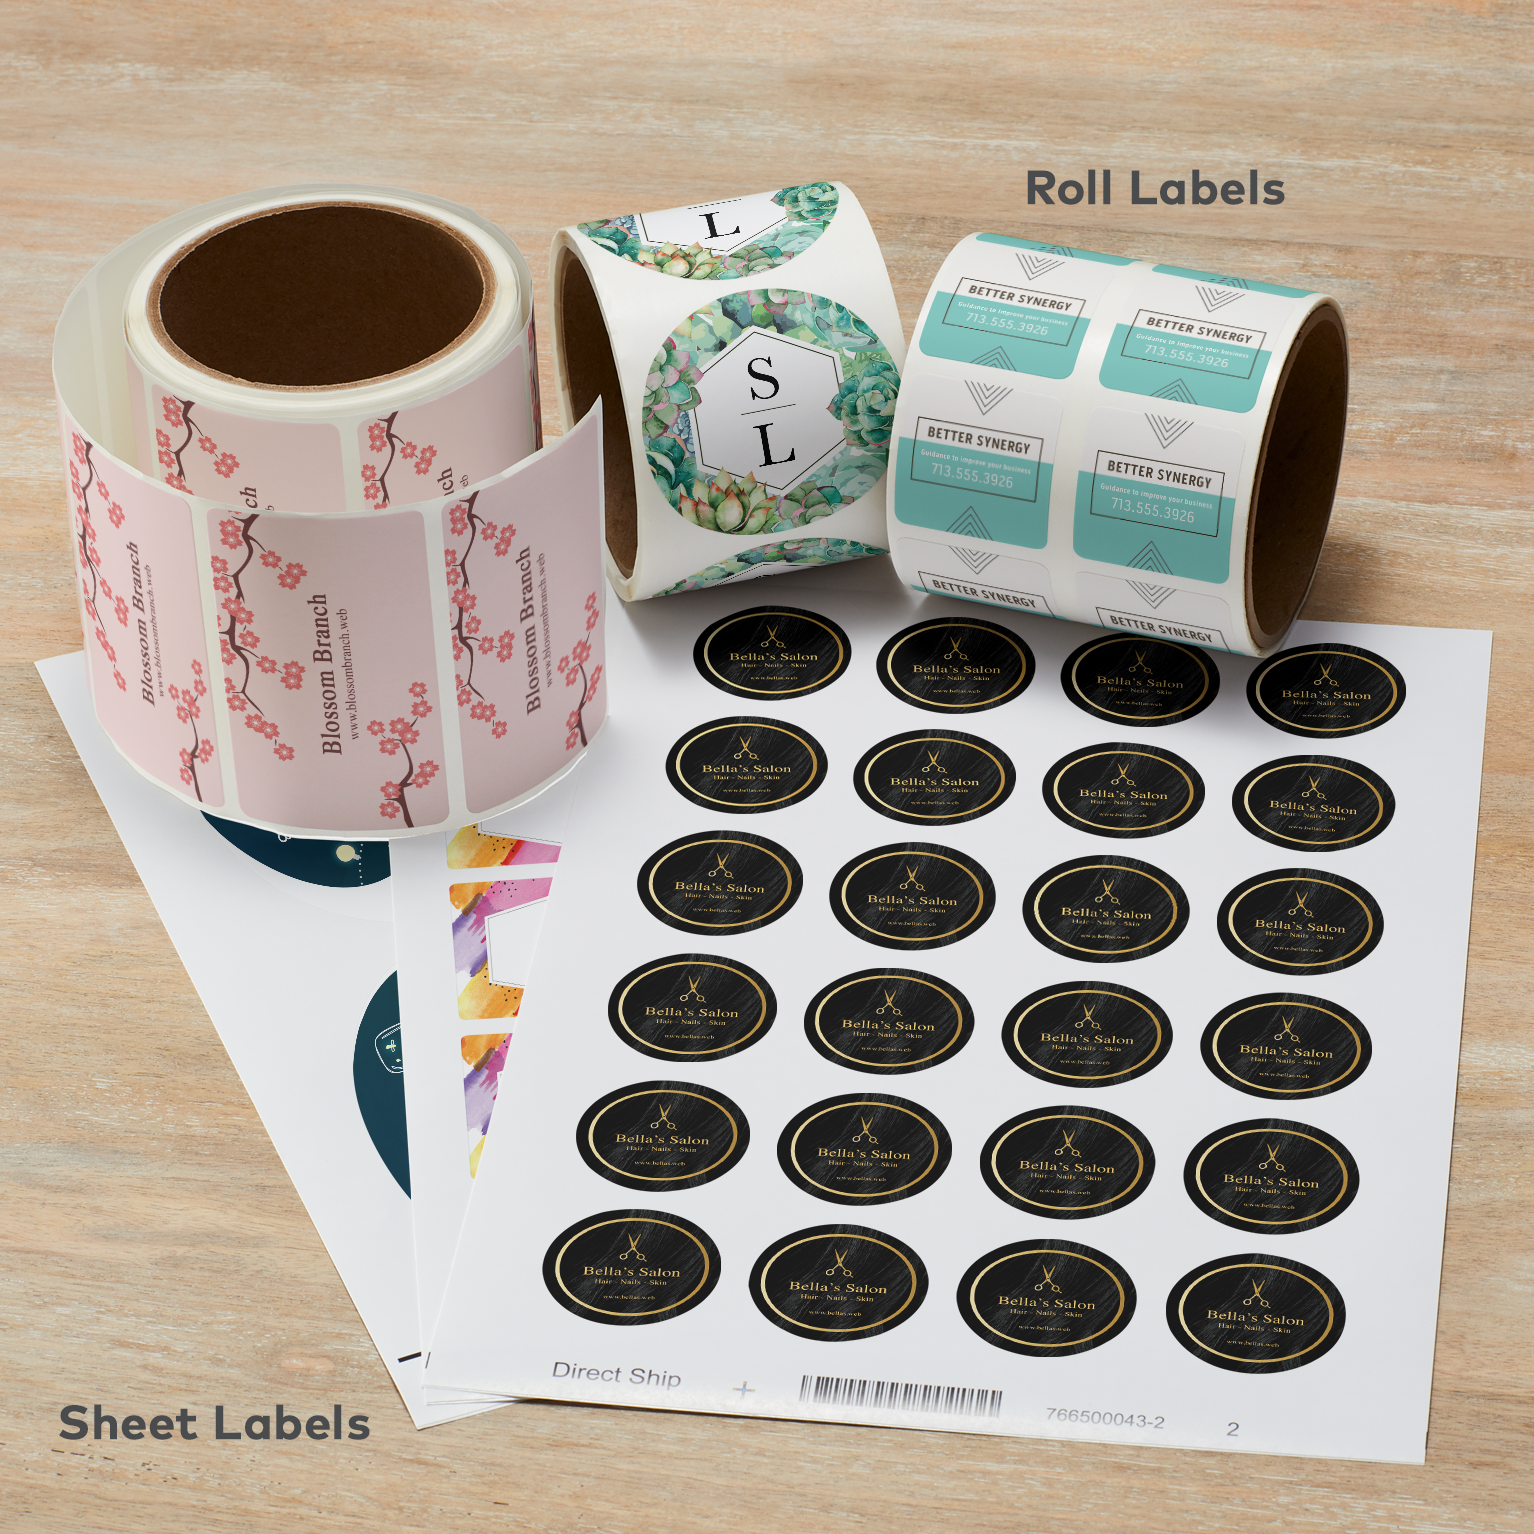 Where can I buy special paper for creating labels